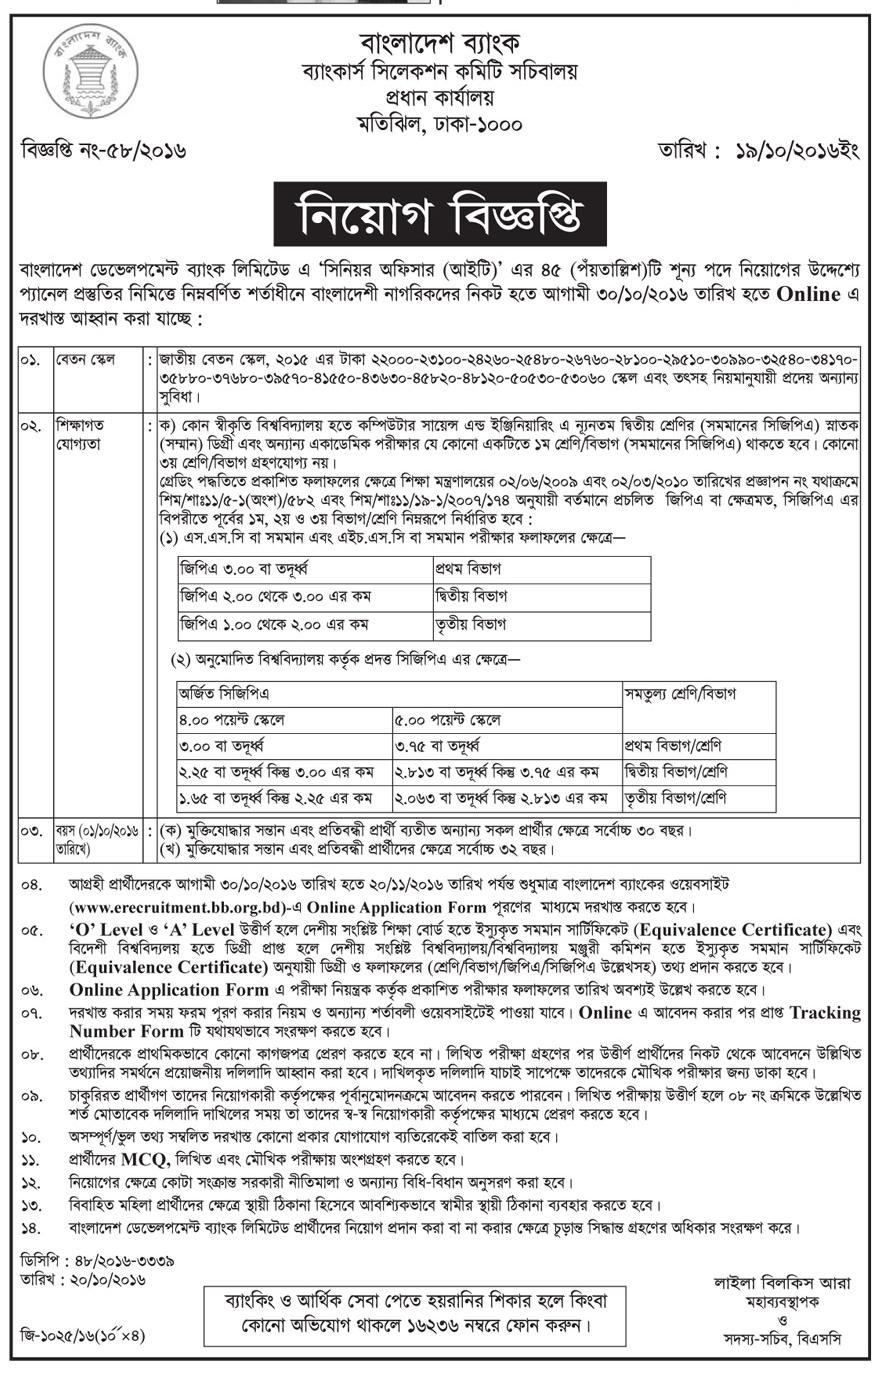 ad 2016 10 22 6 18 b Bangladesh Development Bank Limited  a senior officer jobs circular